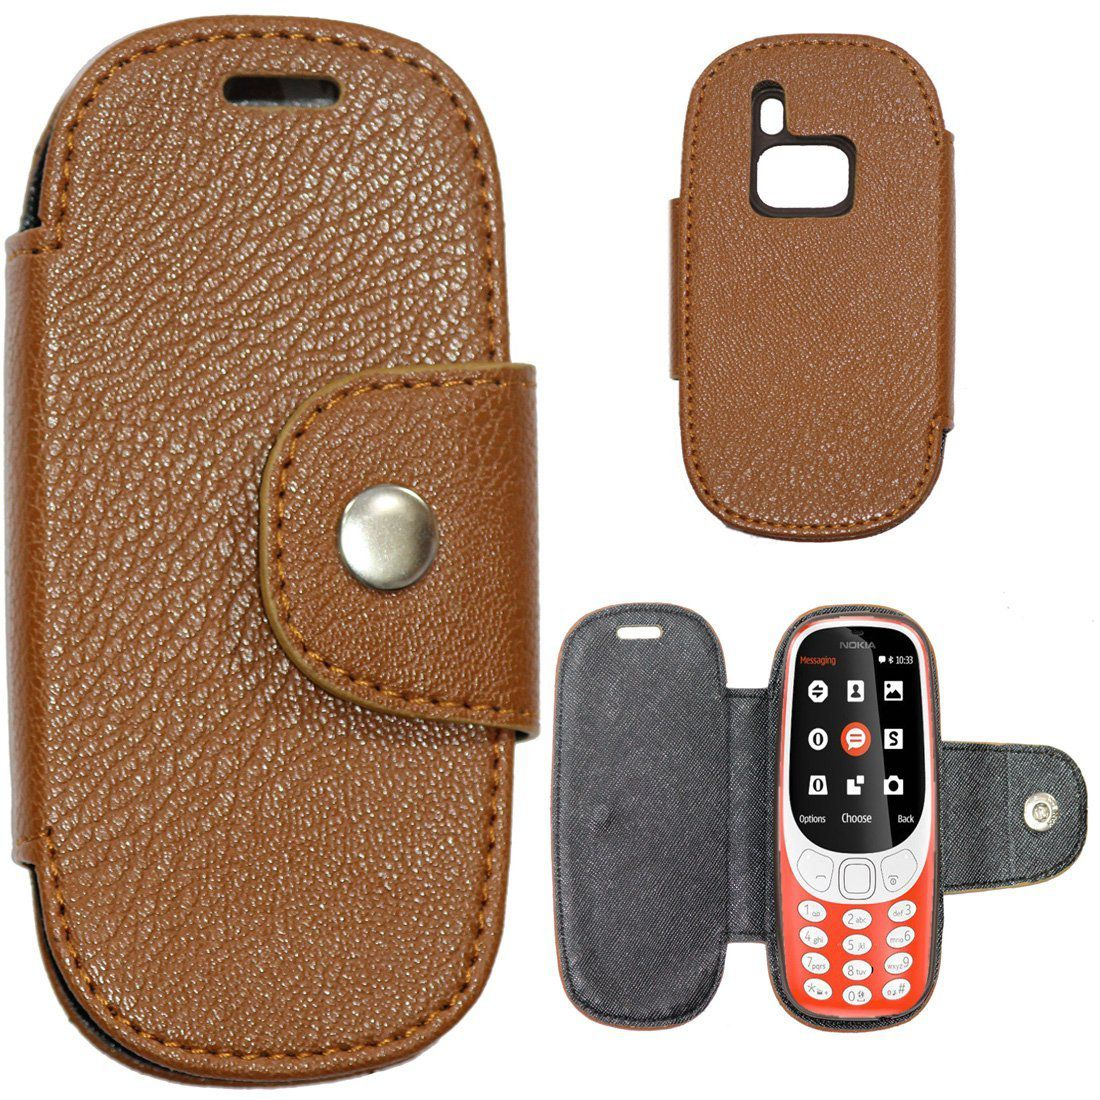 Nokia 3310 2017 Flip Cover by Gizmofreaks - Brown